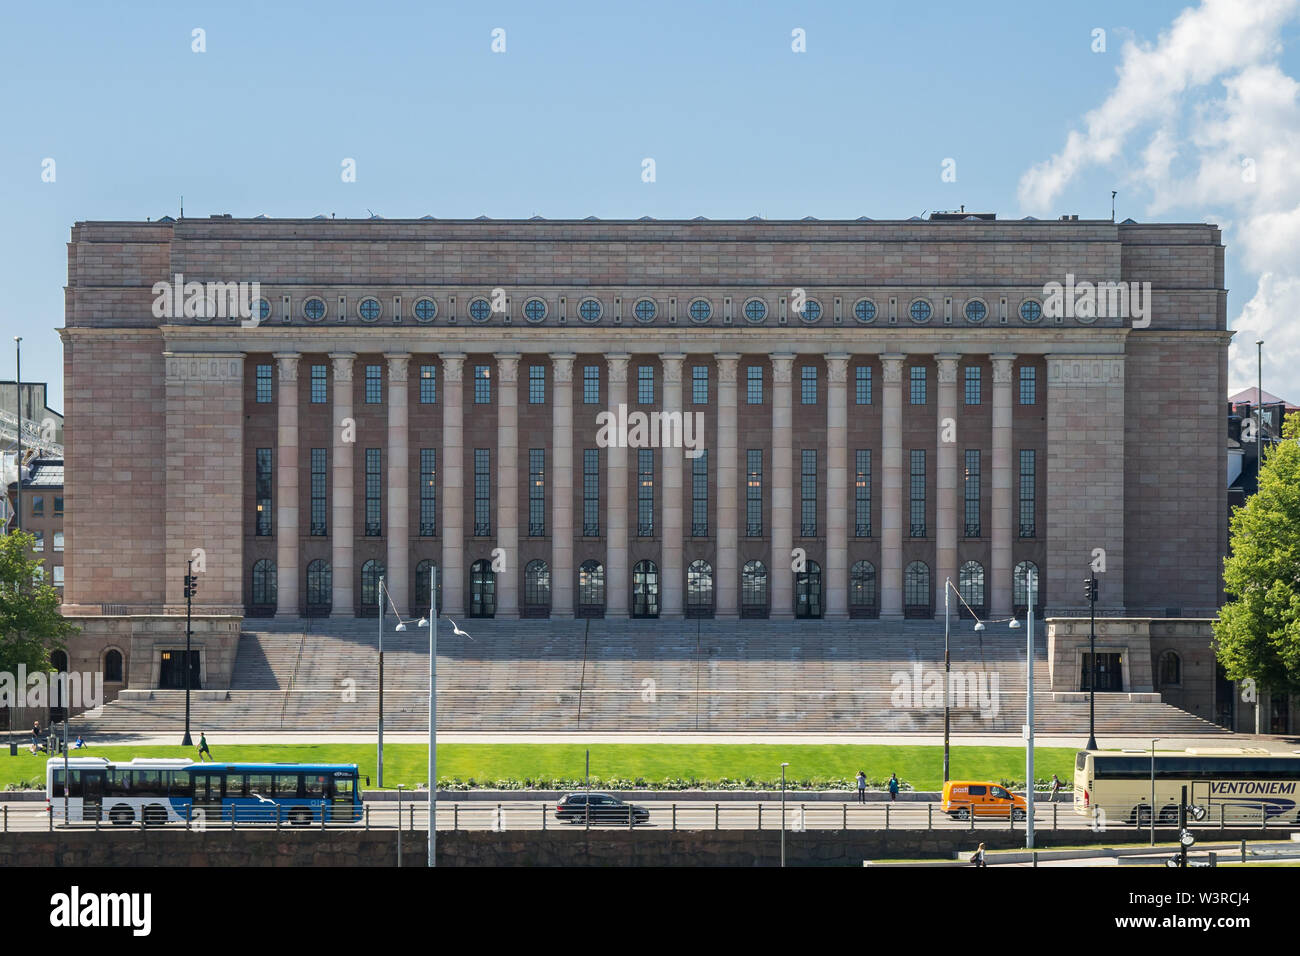 Helsinki, Finlande - 1 juillet 2019 - Flexible le Parlement de Finlande à Helsinki Photo Stock